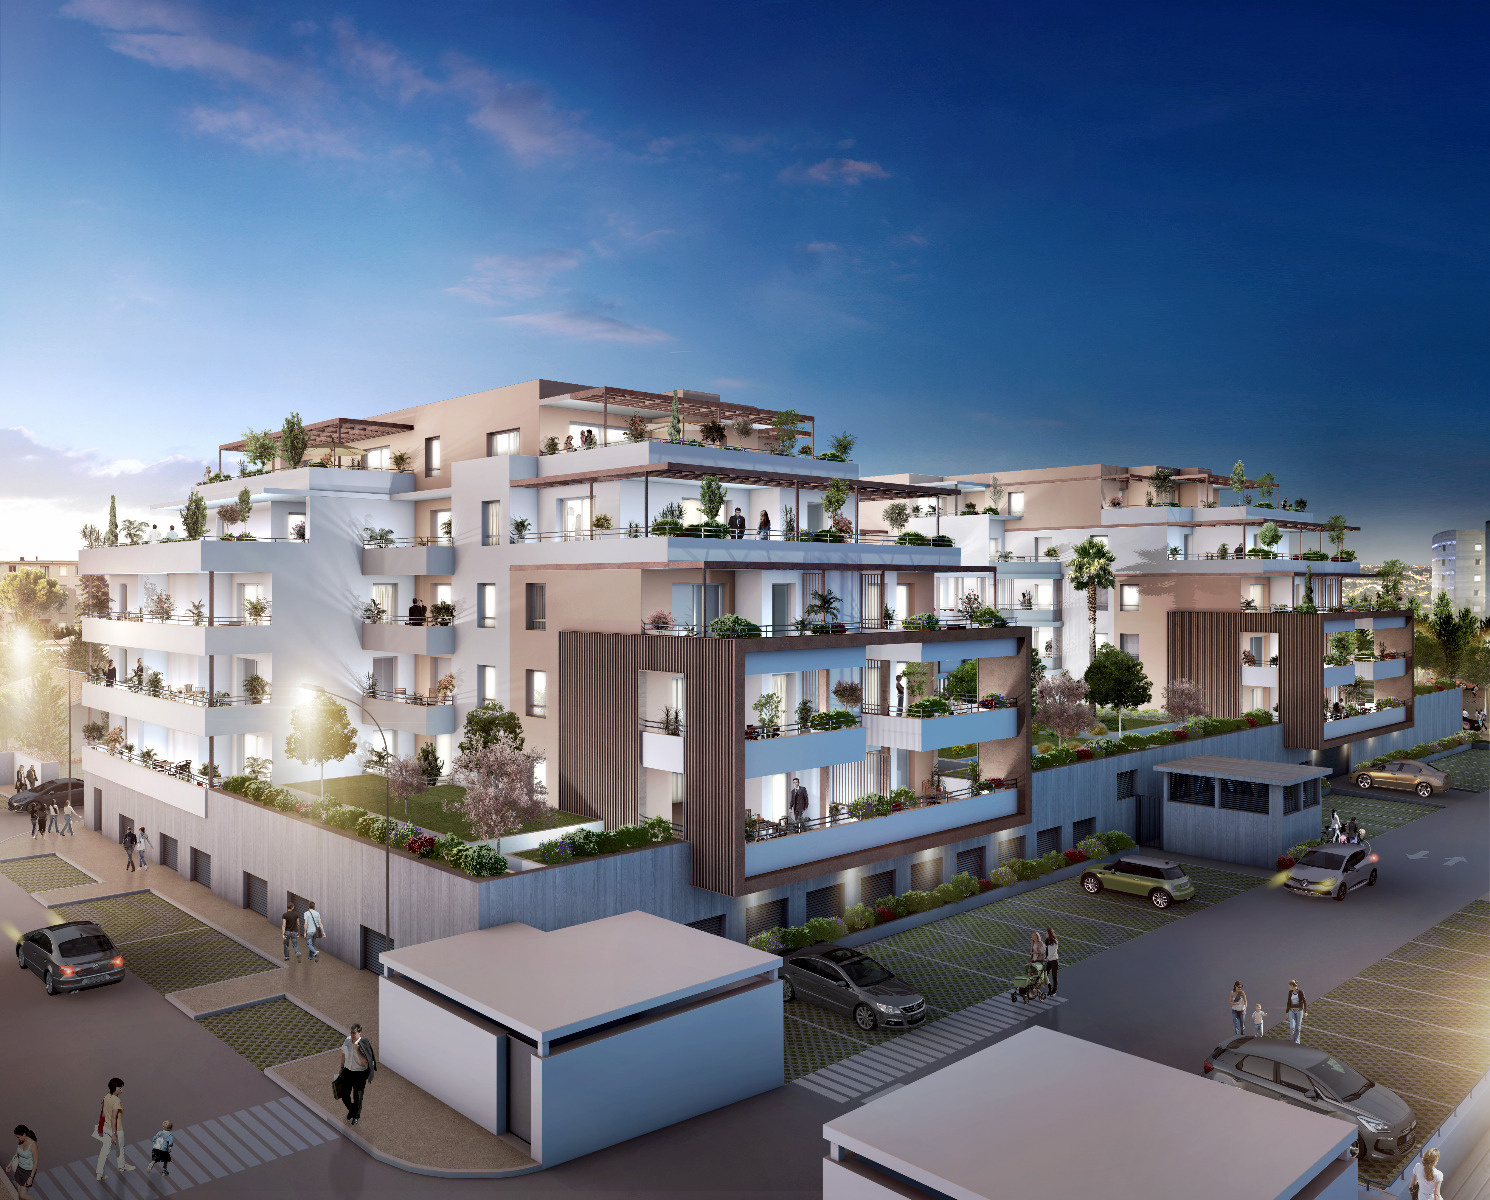 Agence immobili re montaury immobilier nimes vente et for Agence immobiliere location vente